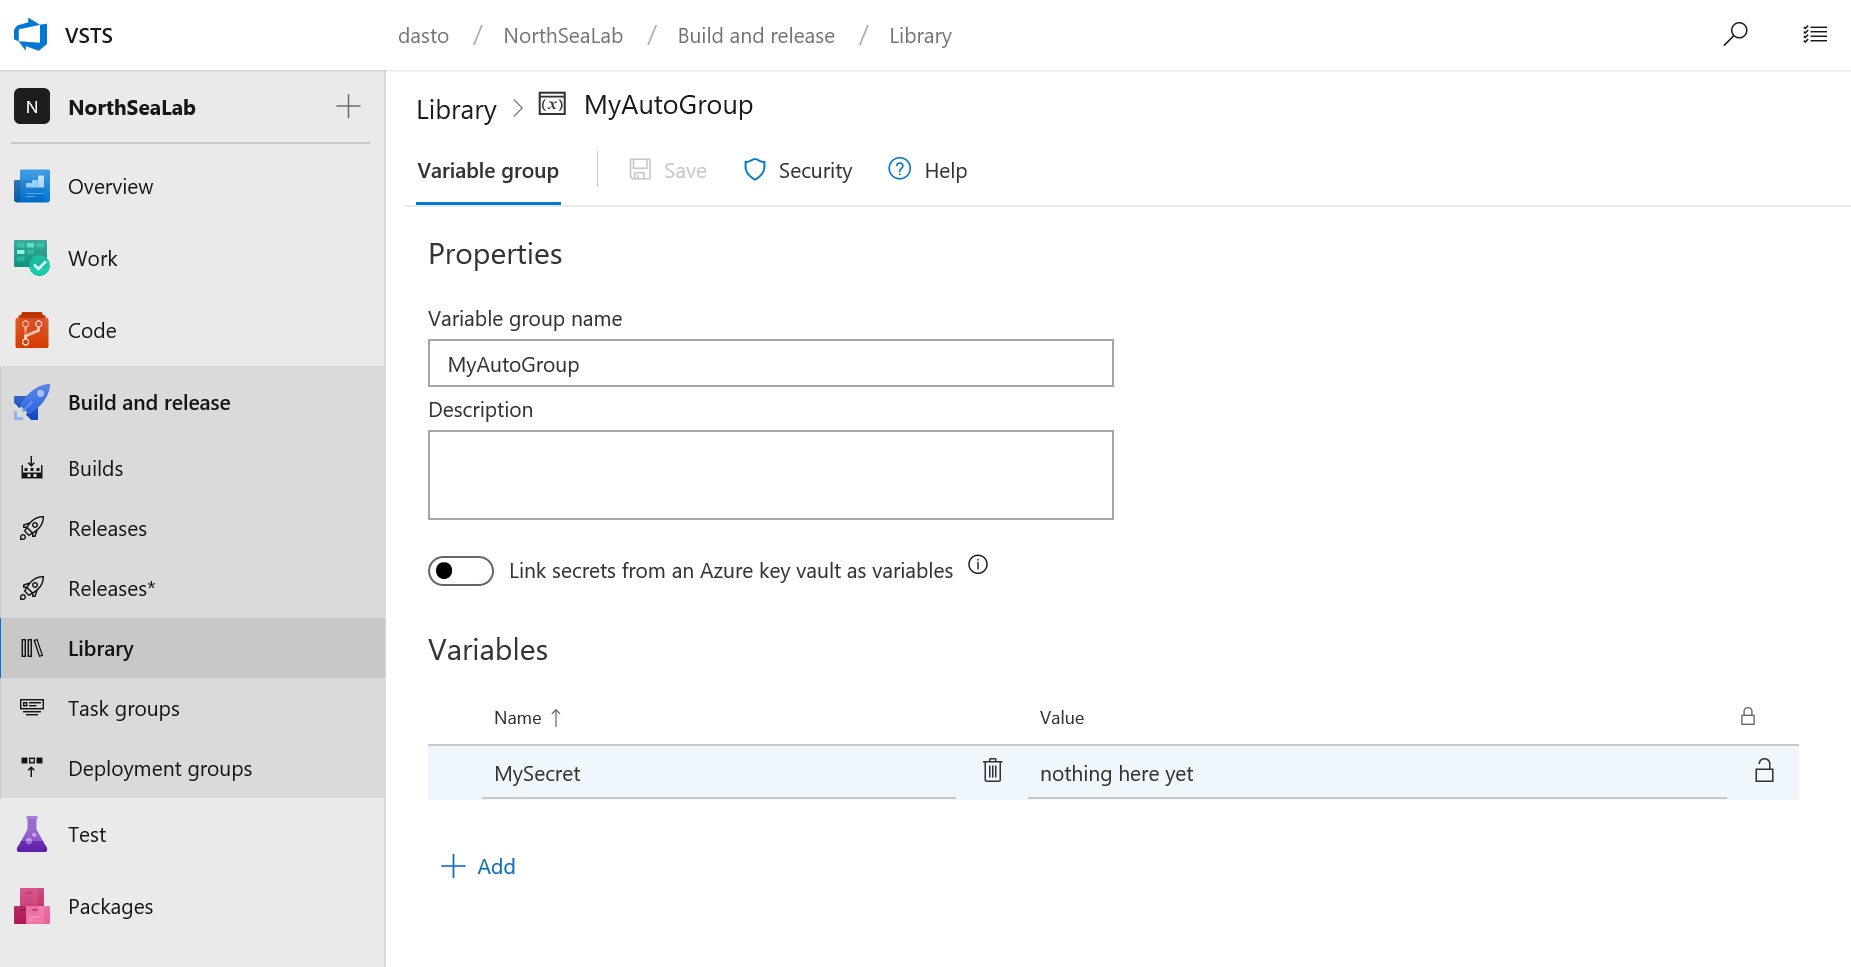 Updating a VSTS variable group from the command line